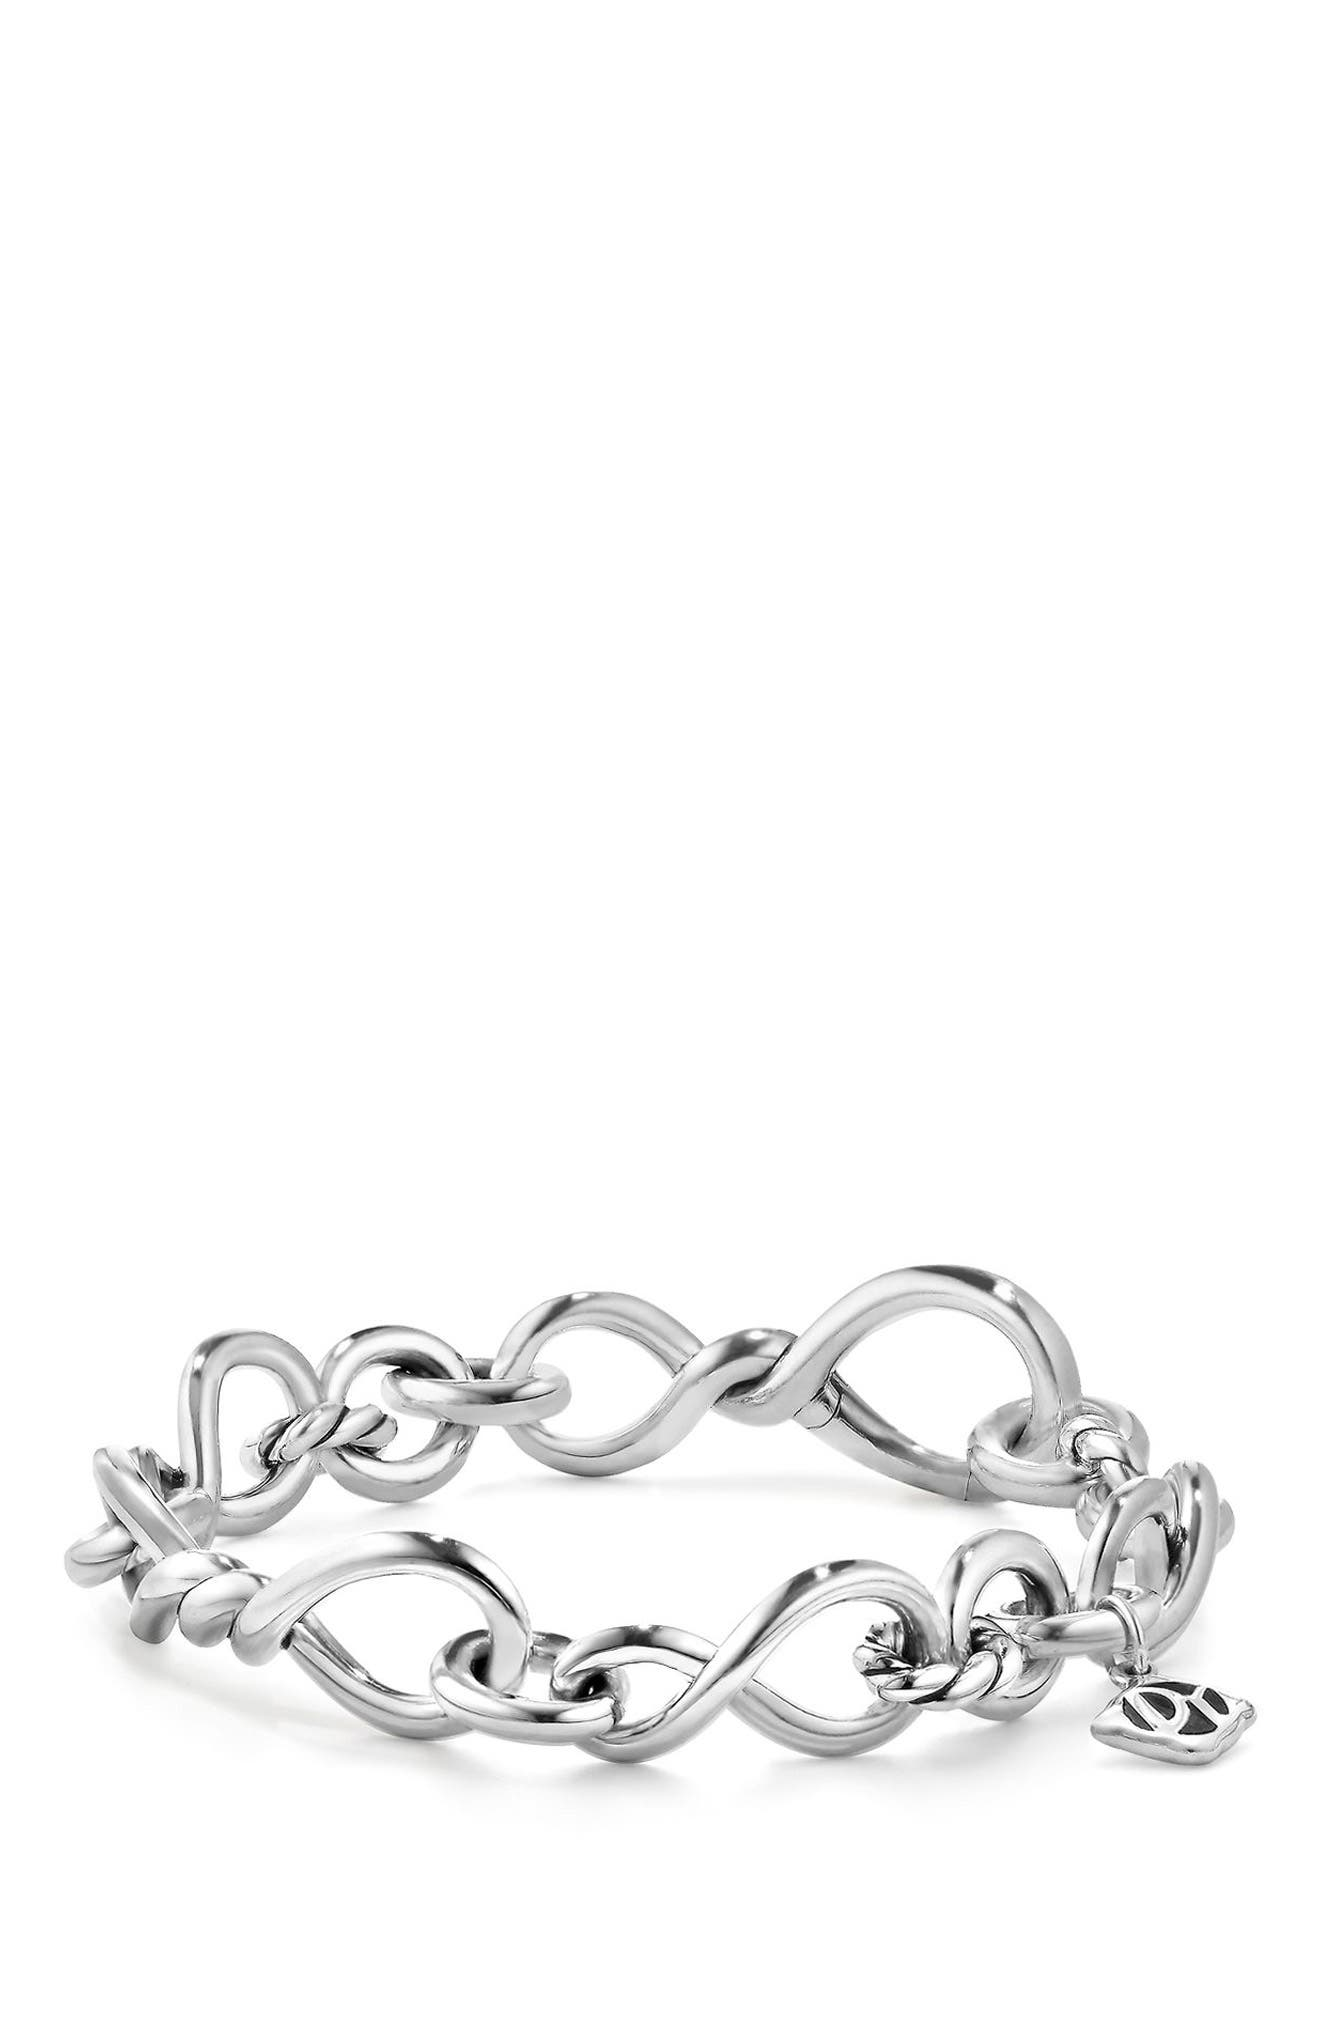 Continuance Medium Chain Bracelet,                         Main,                         color, SILVER